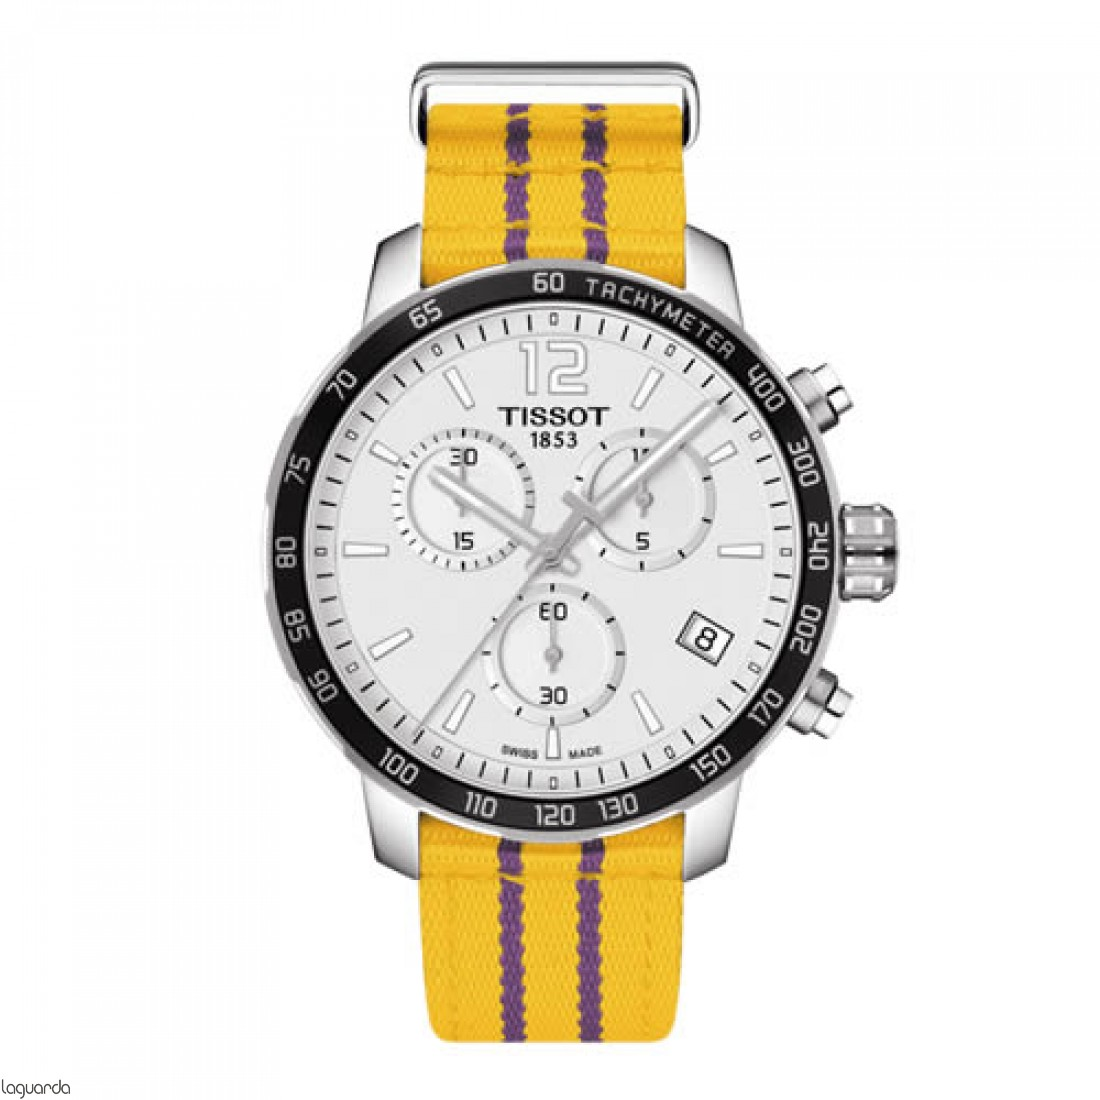 Reloj Tissot Los Angeles Lakers Quickster T095.417.17.037.05